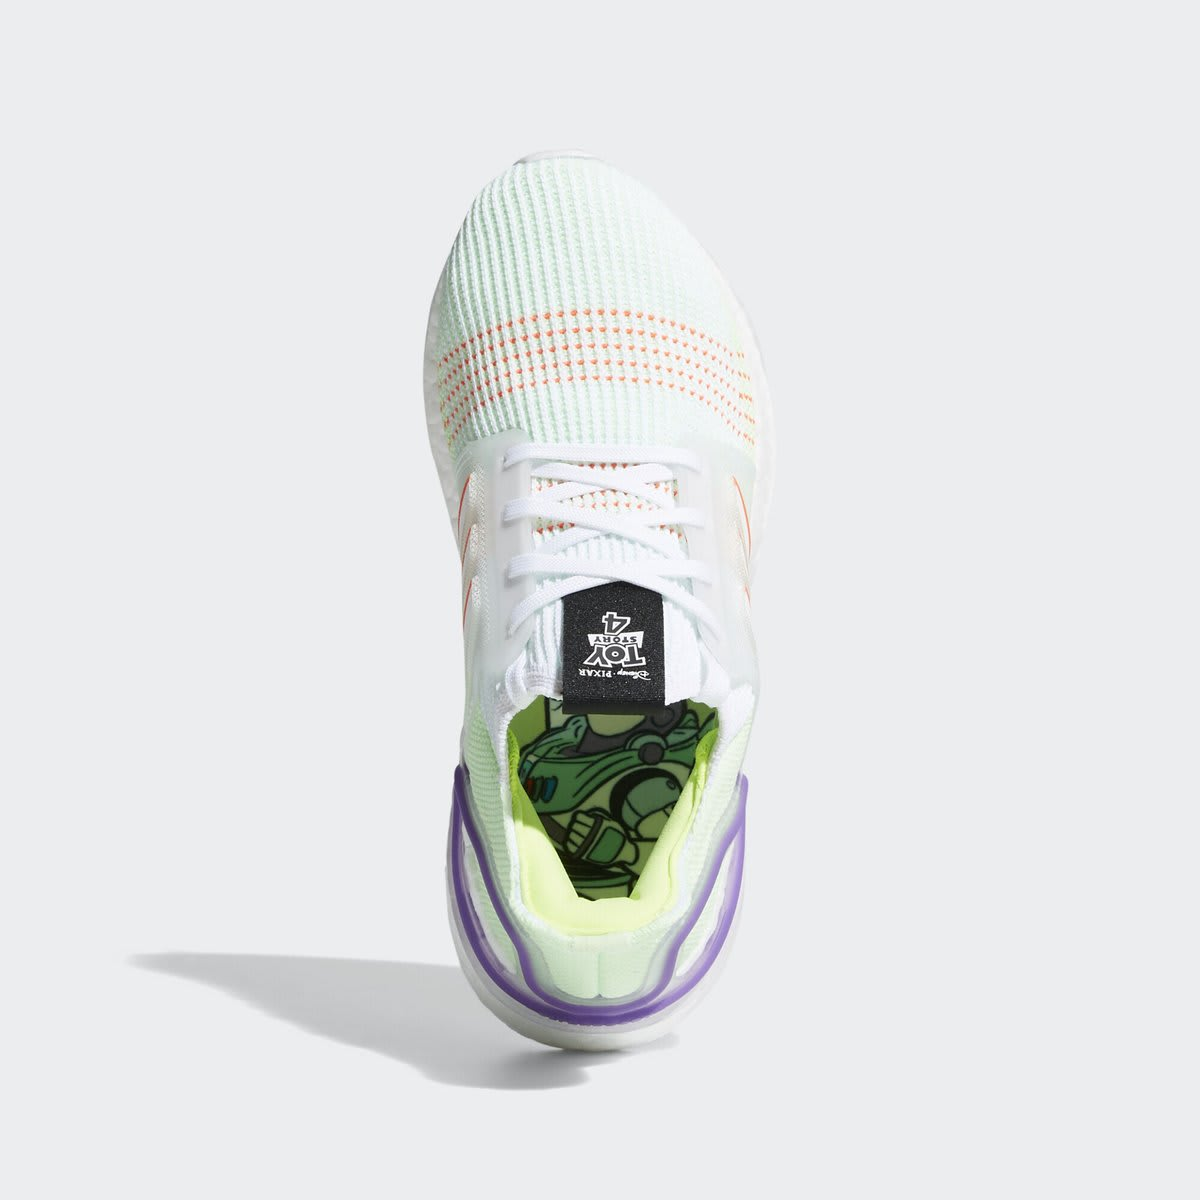 b9bde20622c Adidas Ultra Boost 19 'Toy Story 4/Buzz Lightyear' Release Date | Sole  Collector